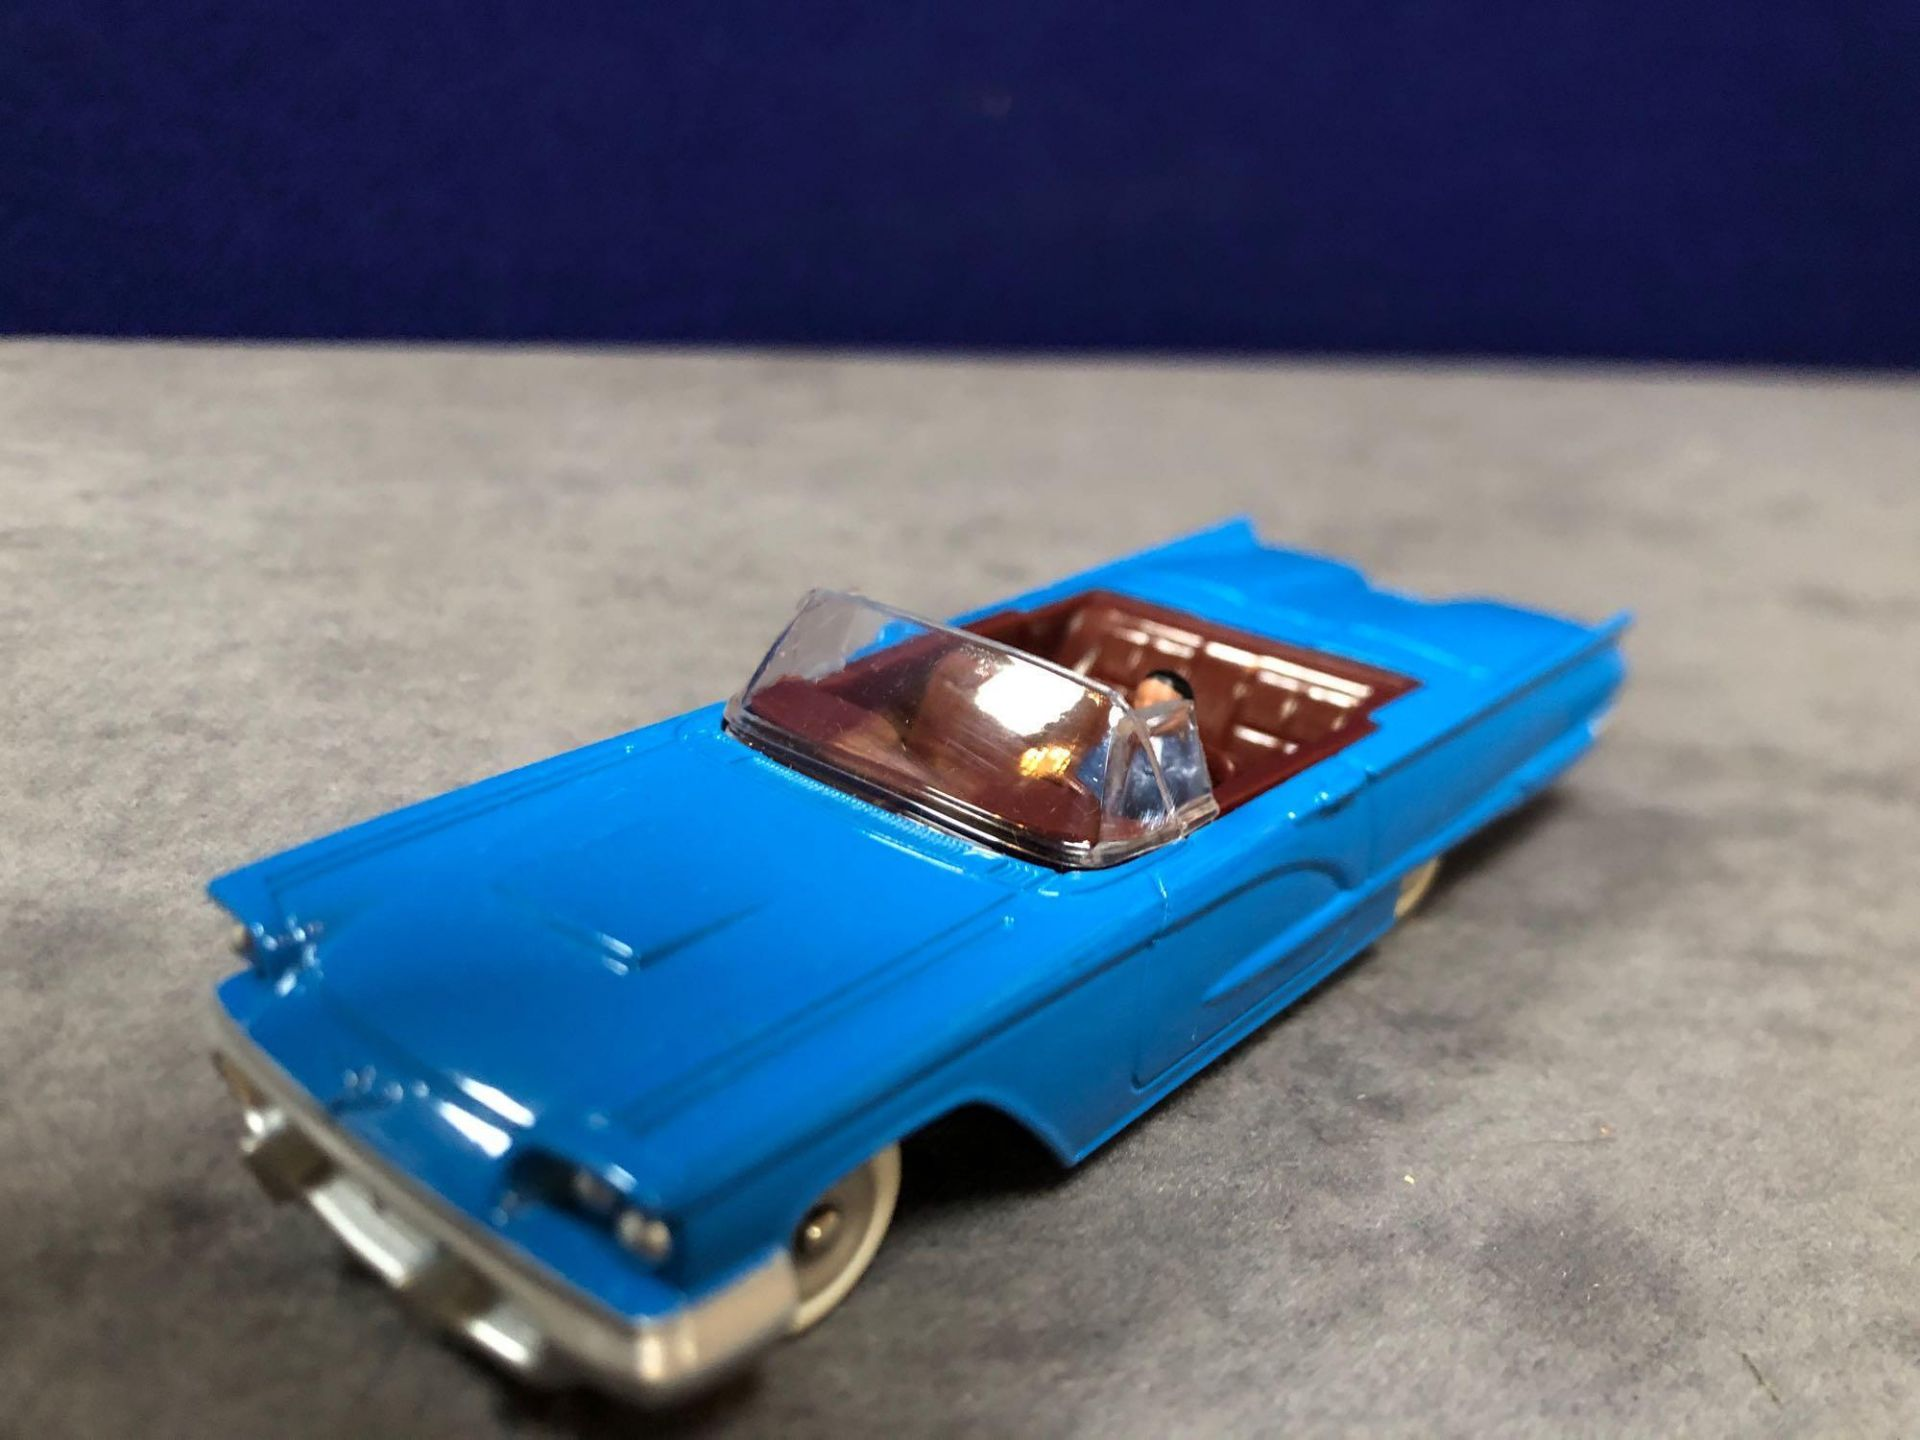 Dinky (Norev Edition) Diecast #555 Ford Thunderbird In Blue Mint In Box 1966 - Image 2 of 3